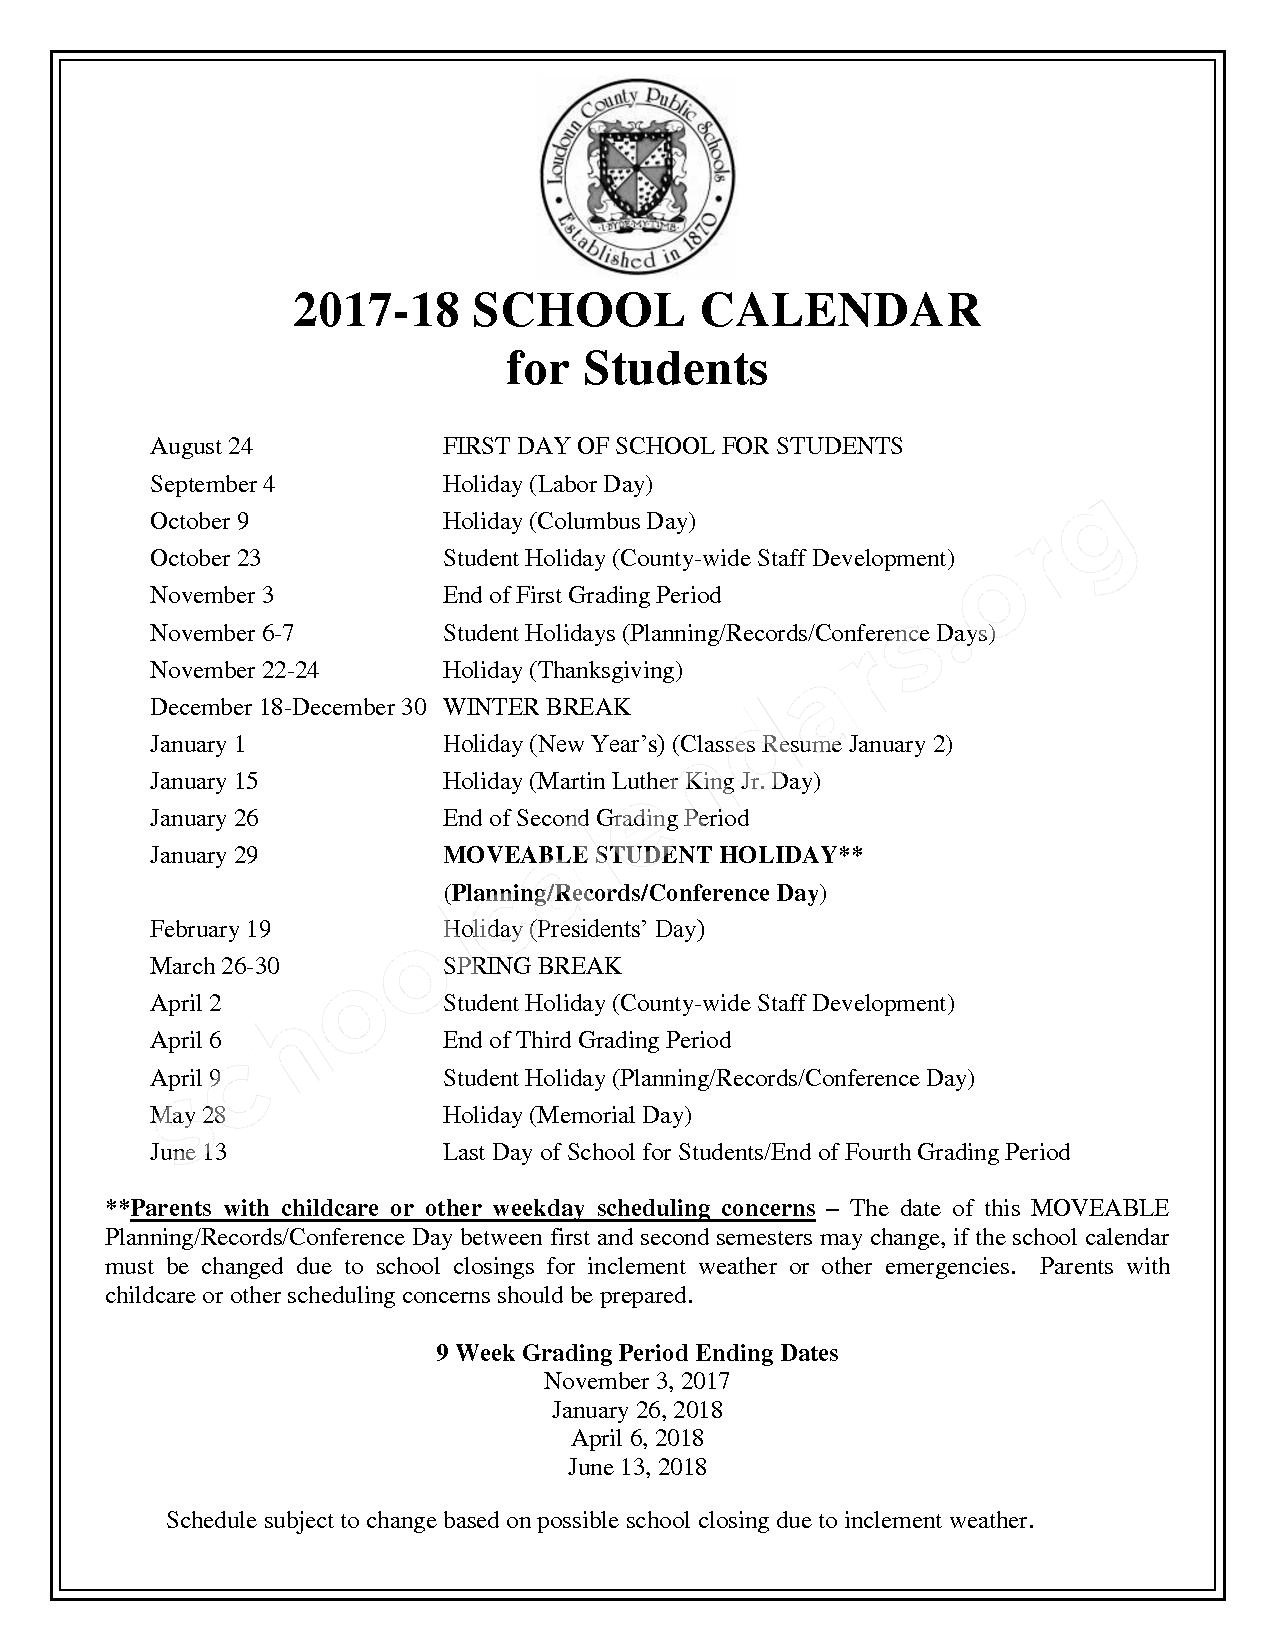 2017 - 2018 Student Calendar – Harmony Middle School – page 1